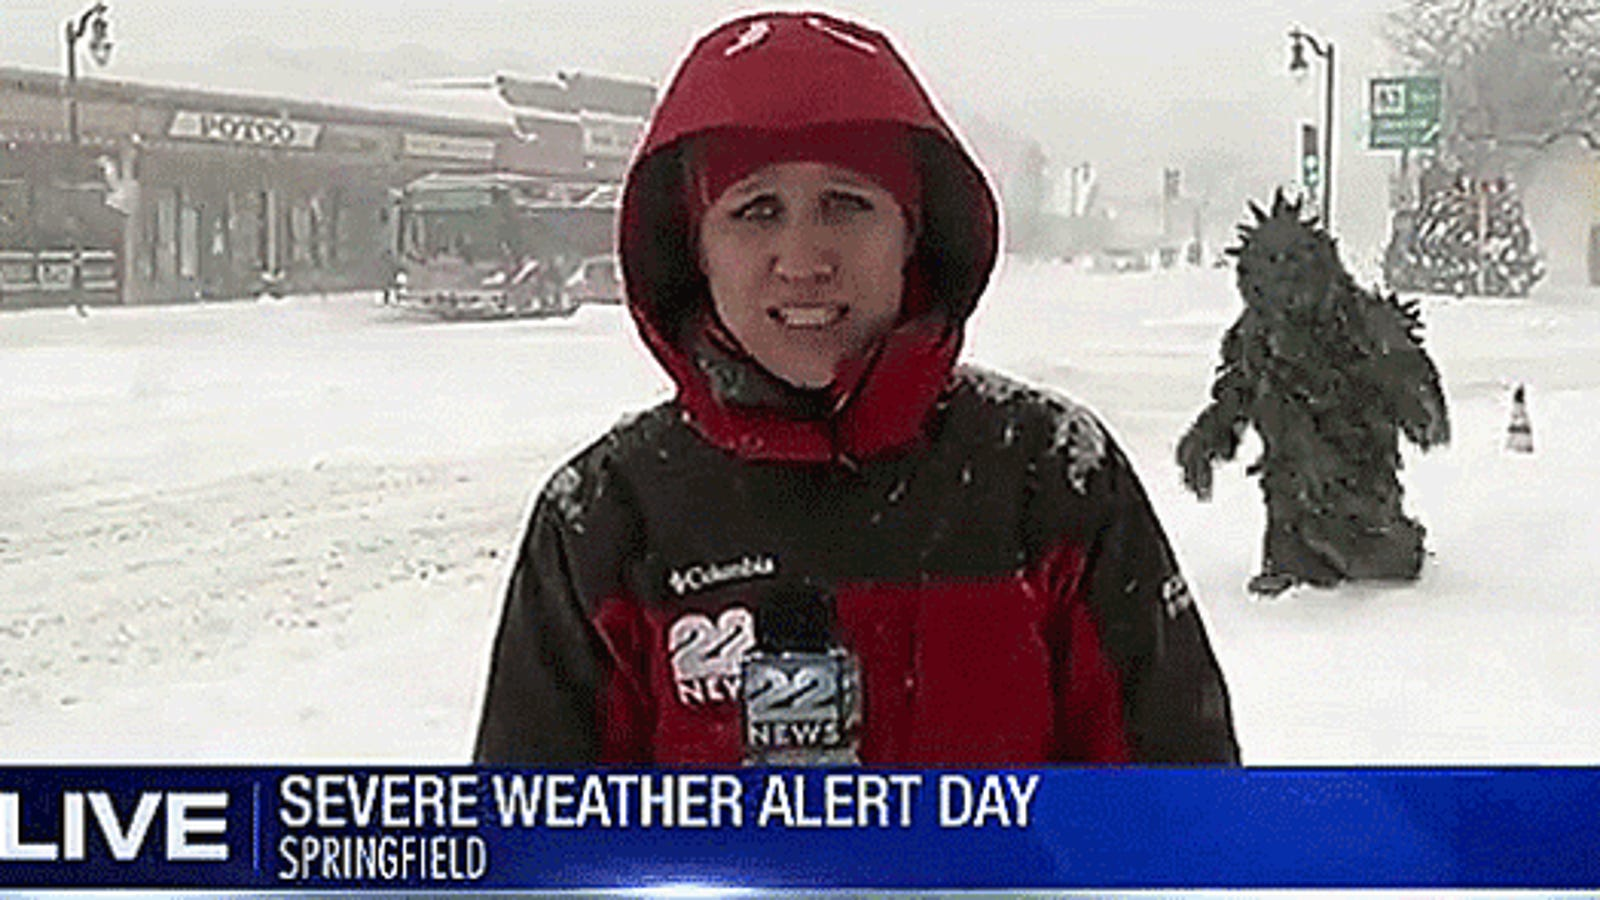 Live Winter Weather Report Interrupted By Person In 'Pot